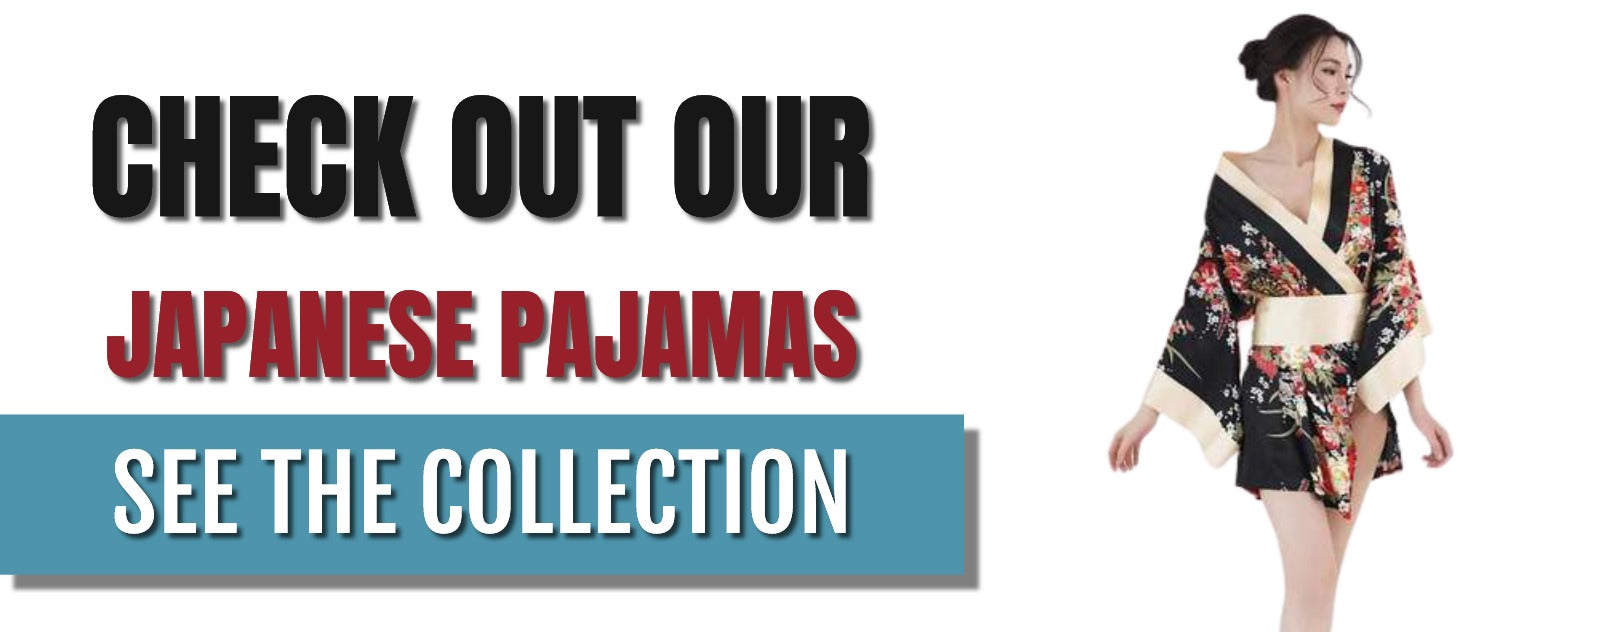 Japanese pajamas collection banner